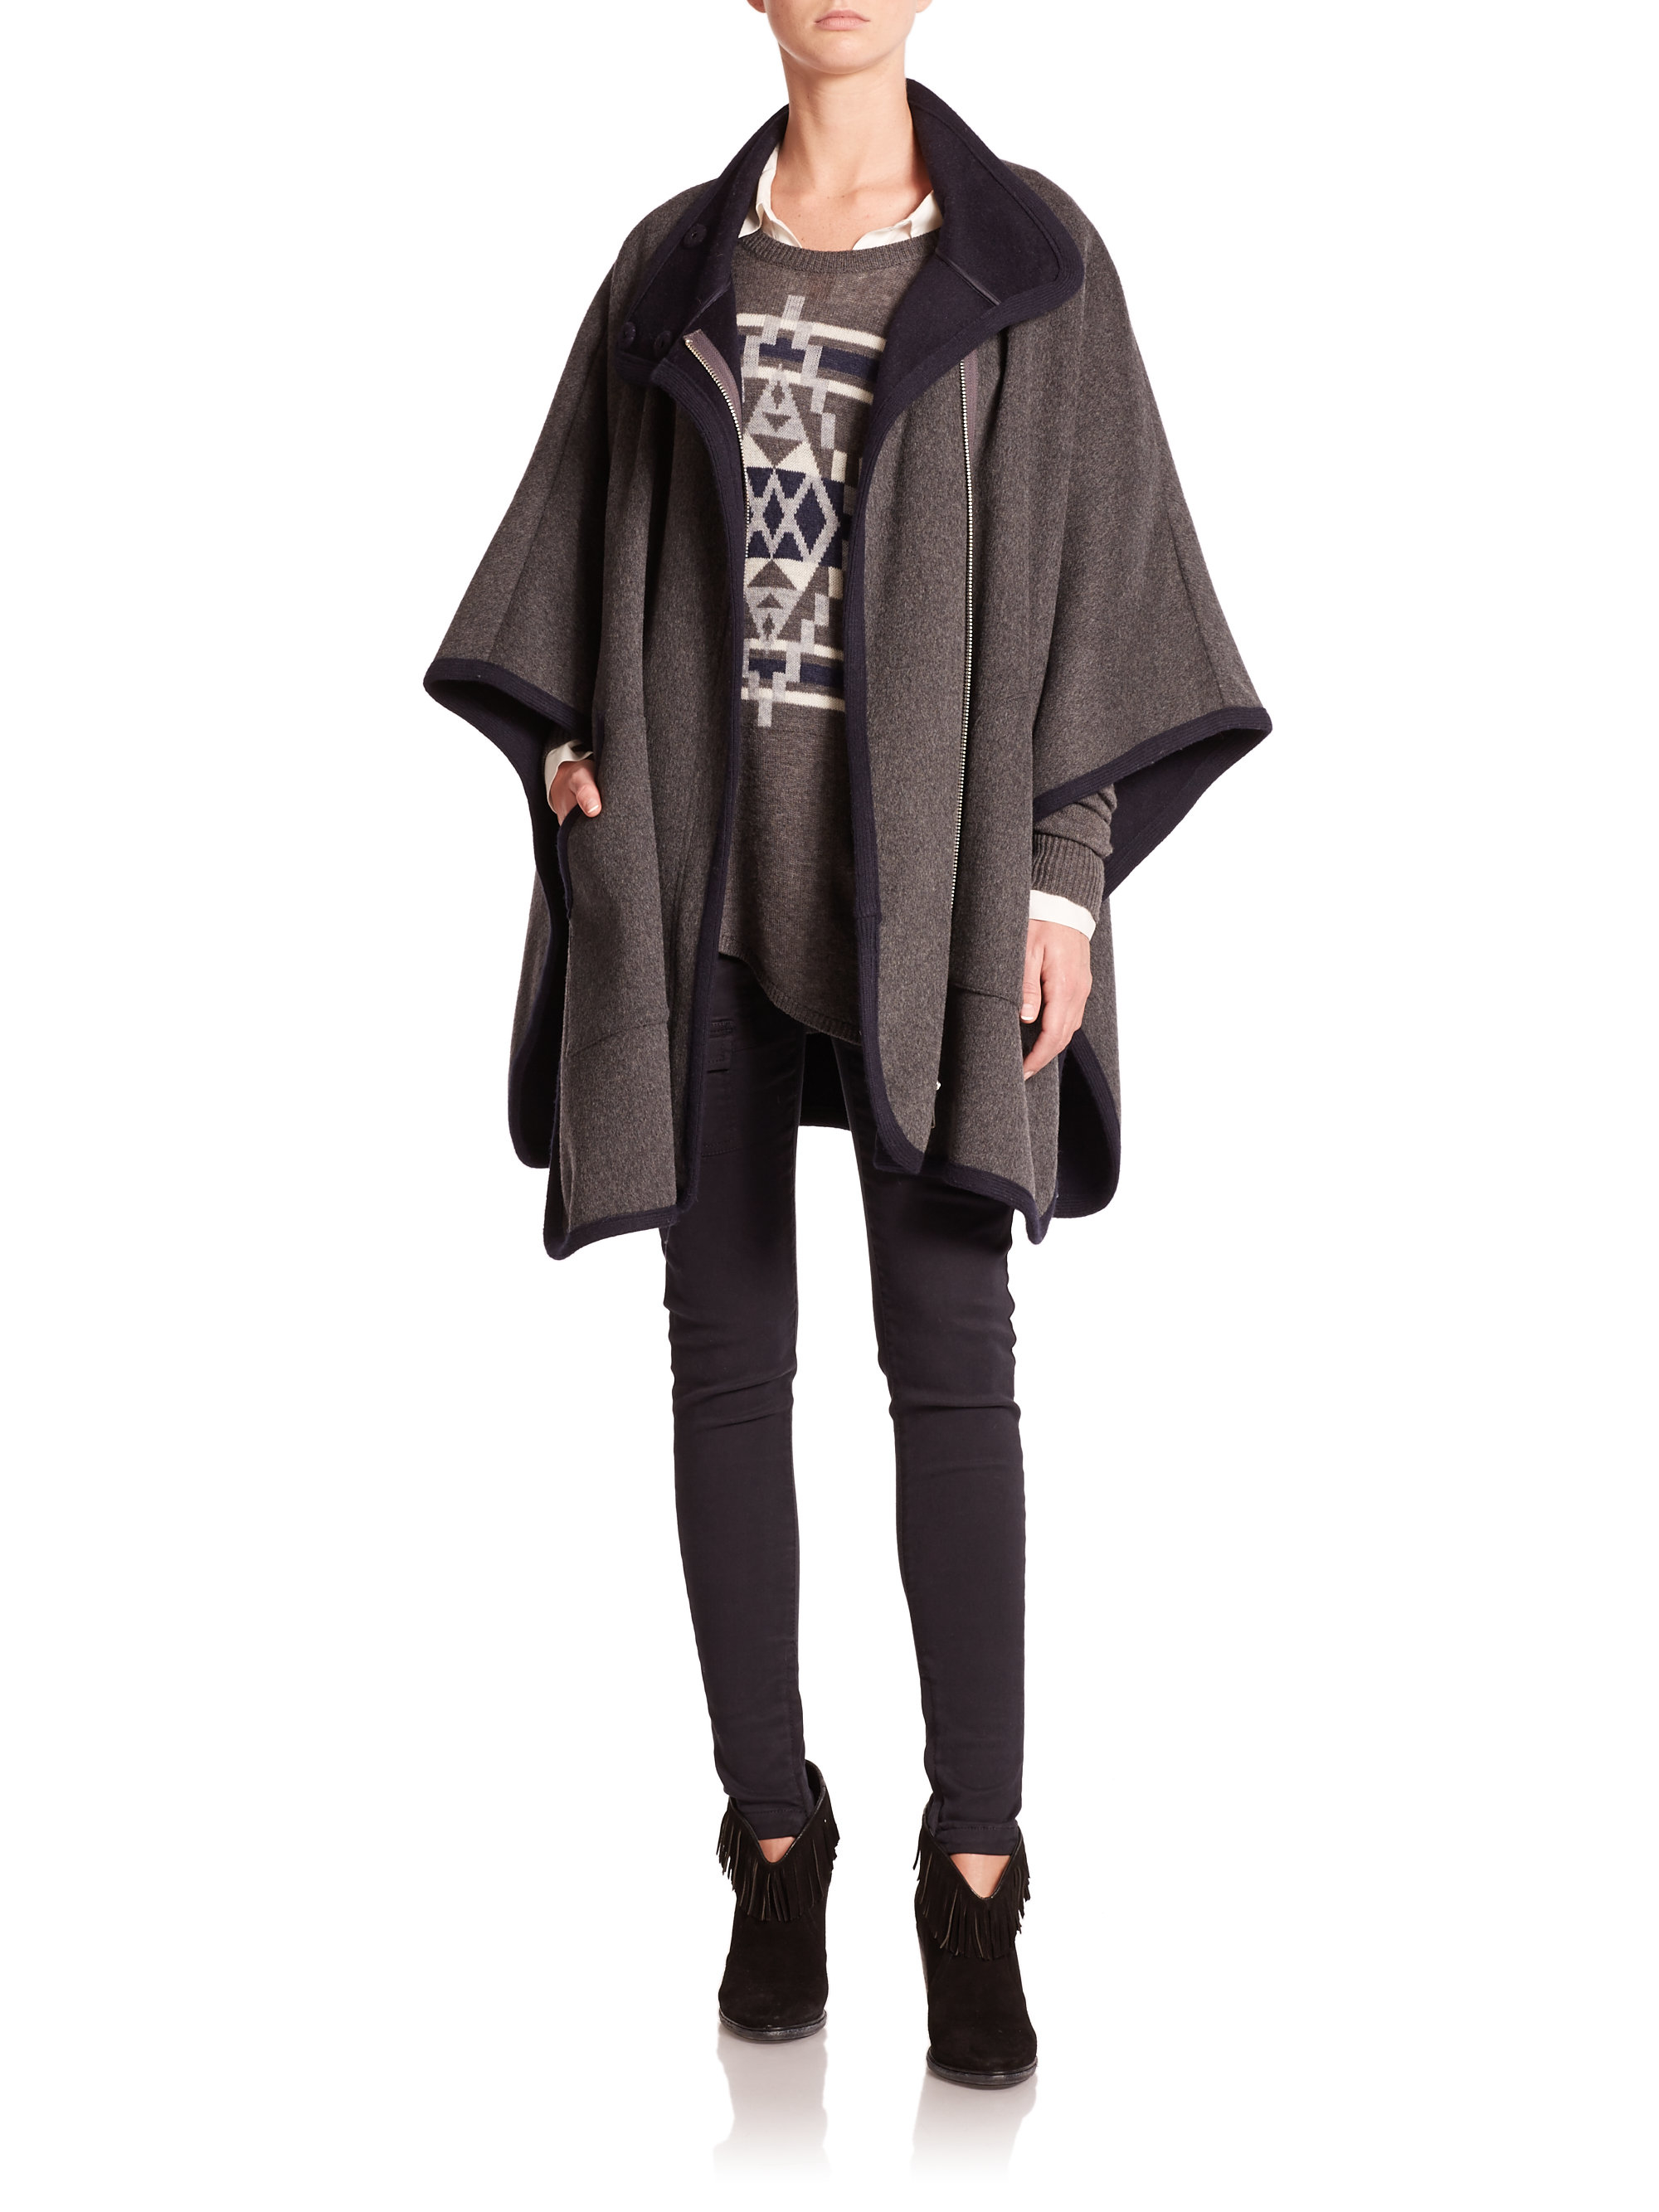 b1cb744a0 Joie Kenzie Double Face Wool Poncho in Gray - Lyst